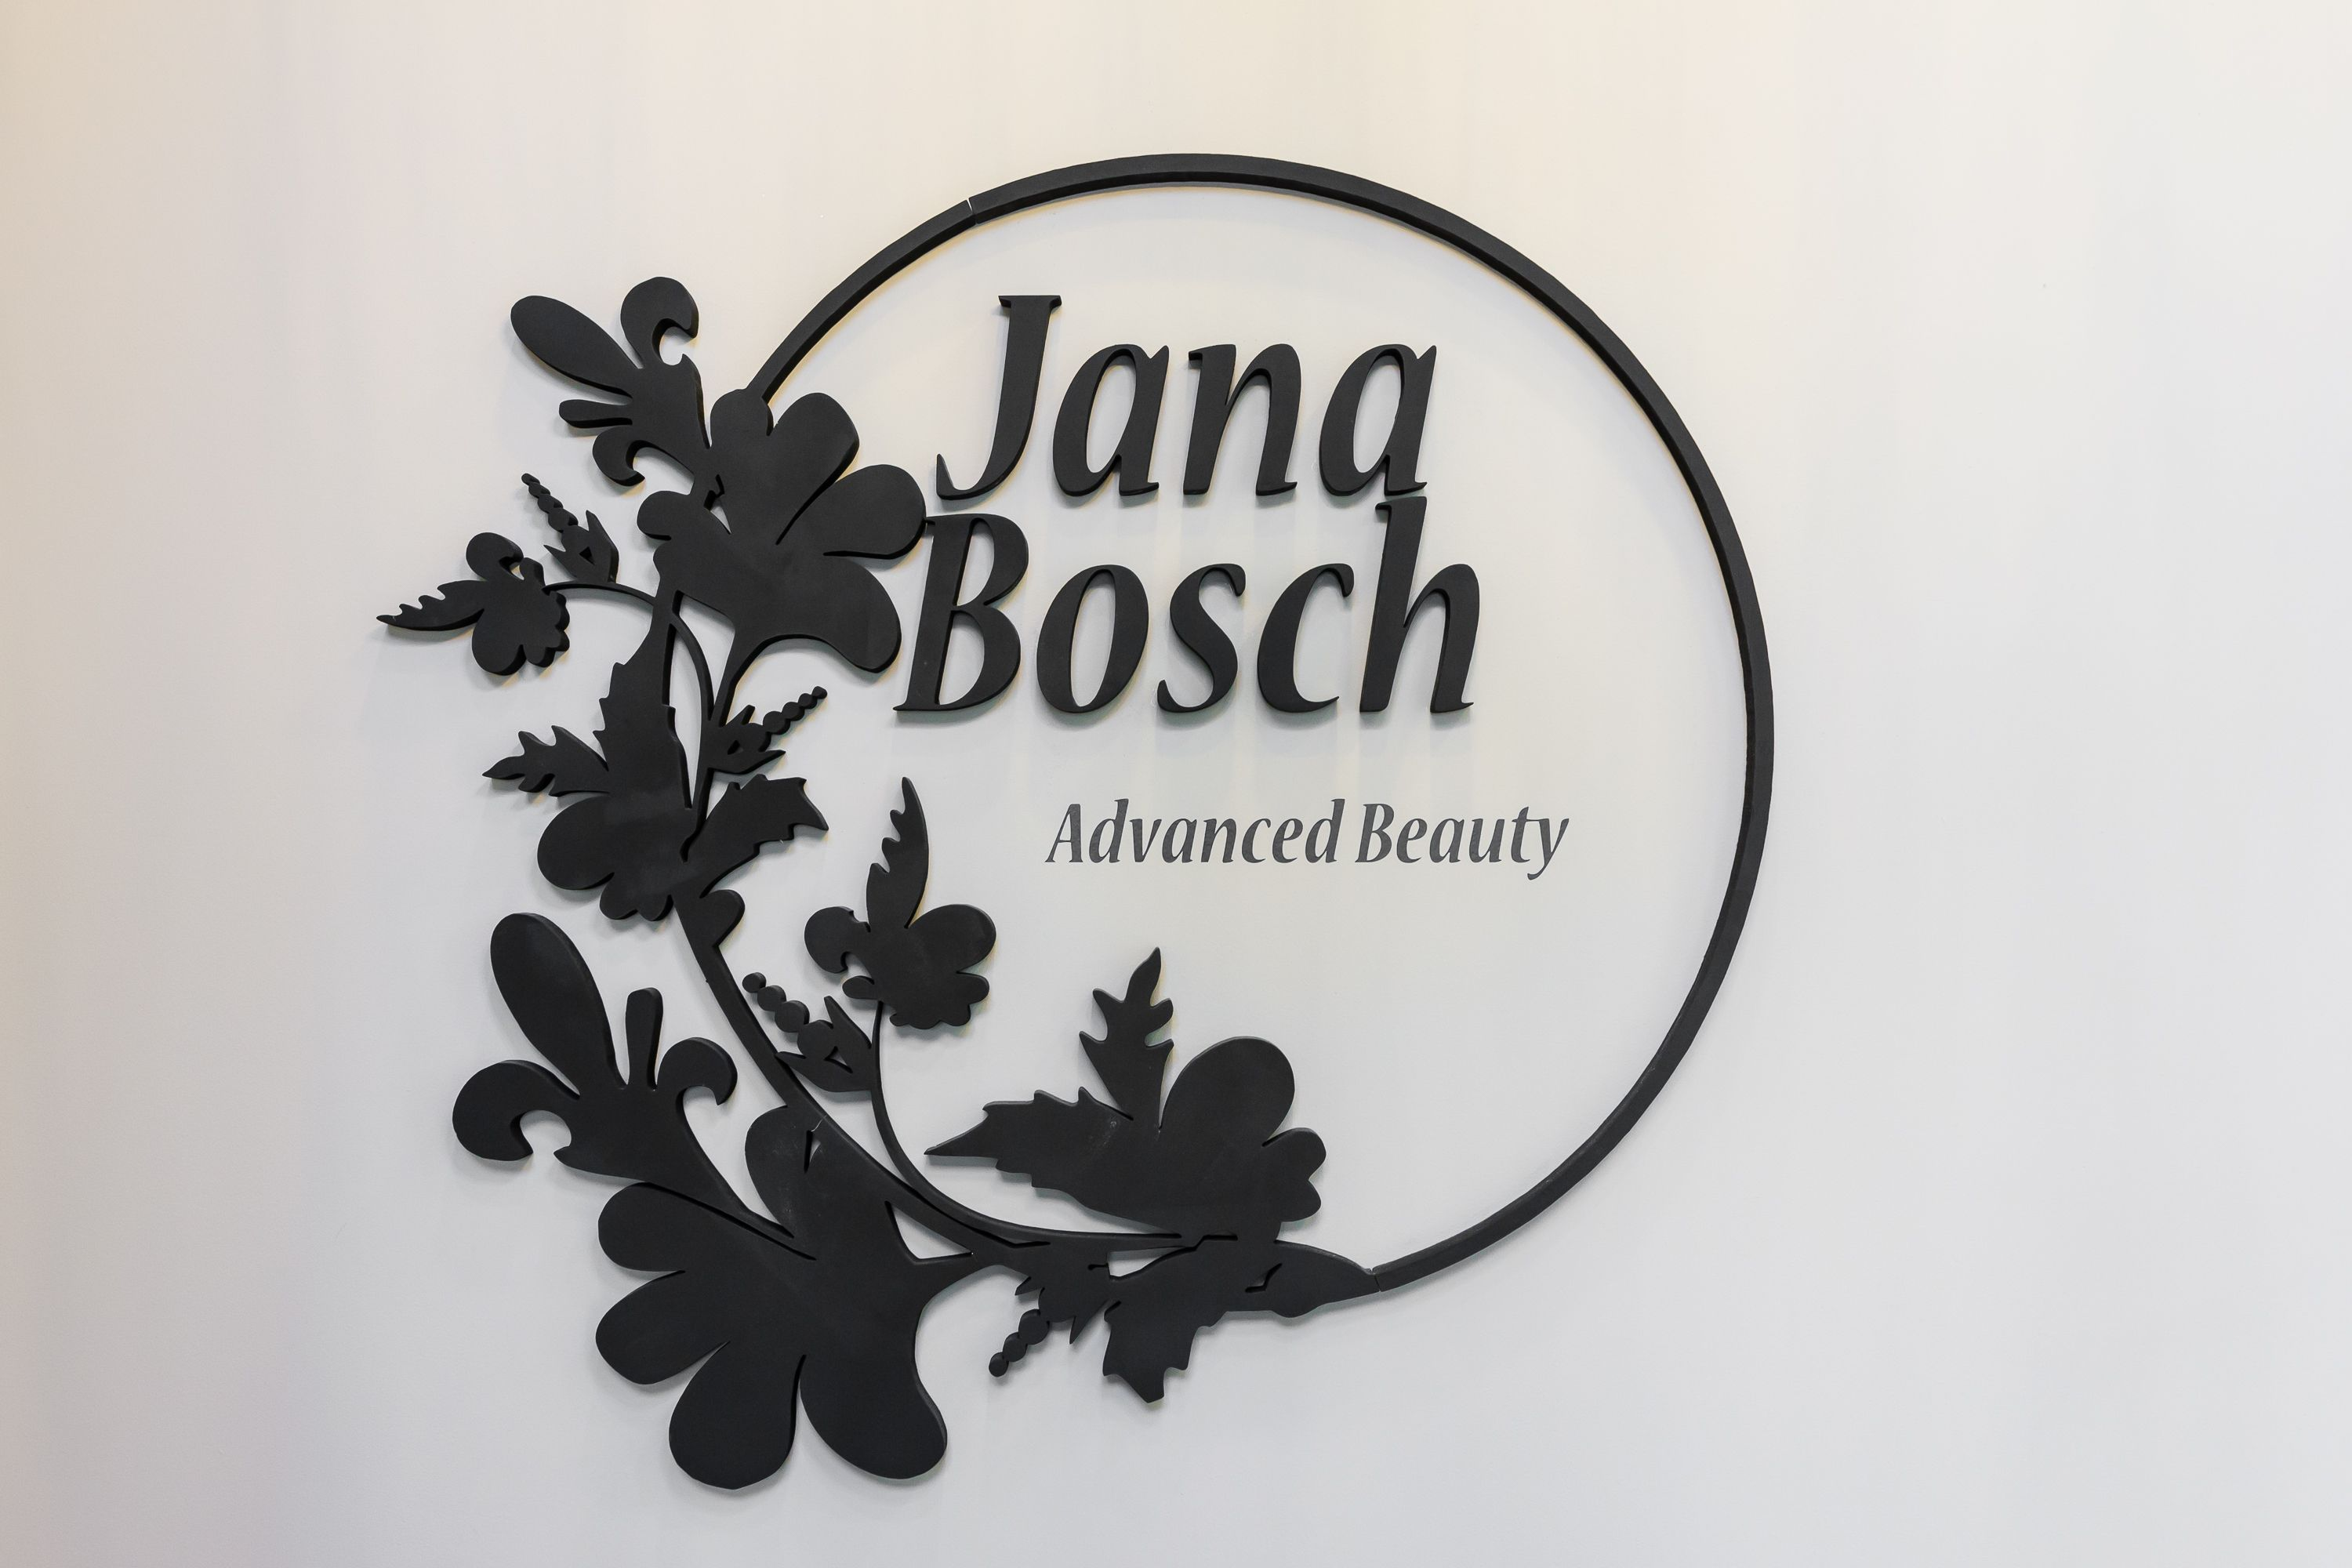 Foto 3 de Centro de estética en  | Jana Bosch Advanced Beauty